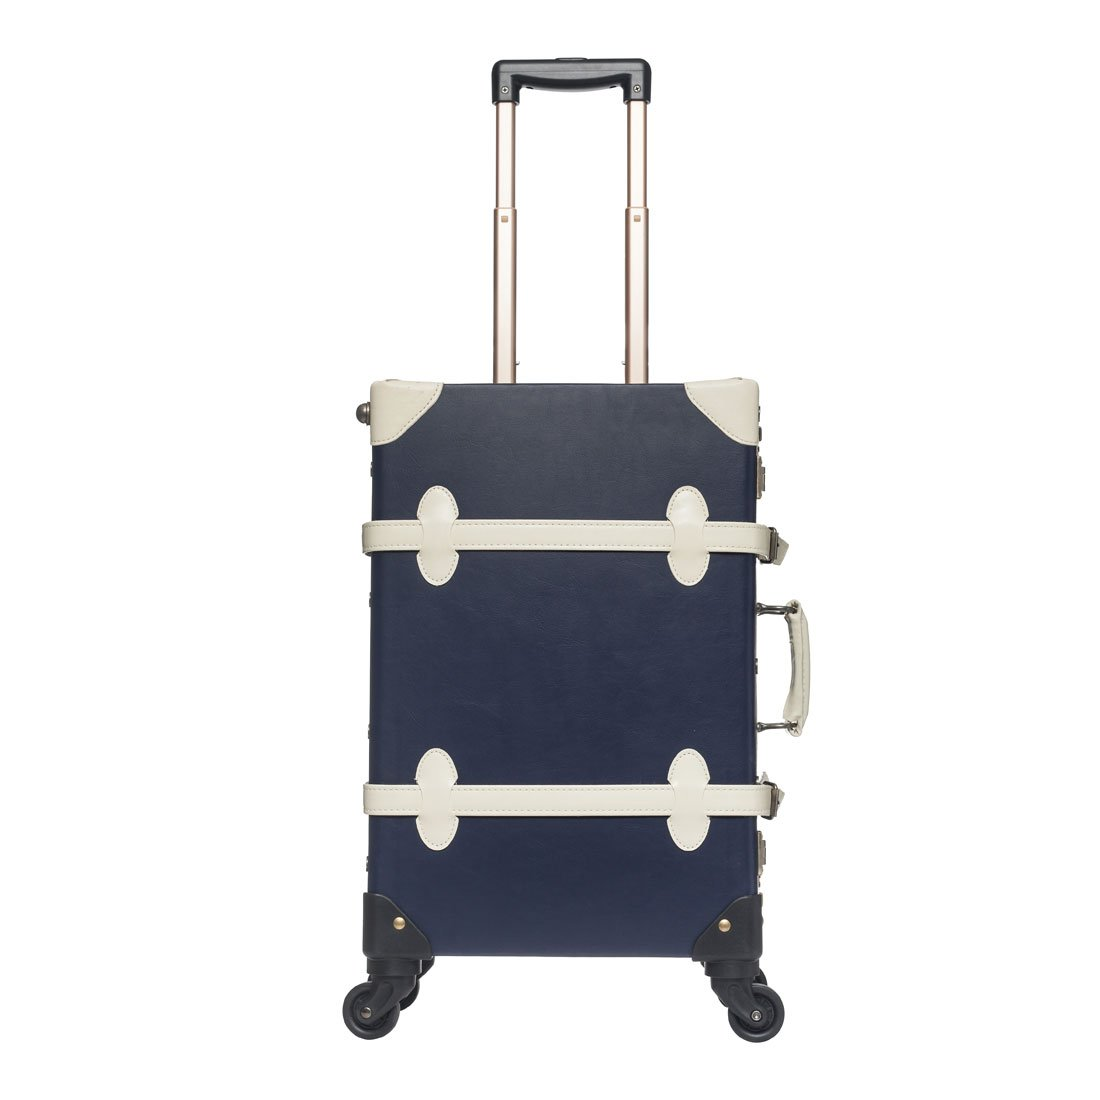 Women Vintage Suitcase 20''-26'' Pu Leather Trolley Luggage Sets or Carry On Bag (20'', Blue with white) by Generic